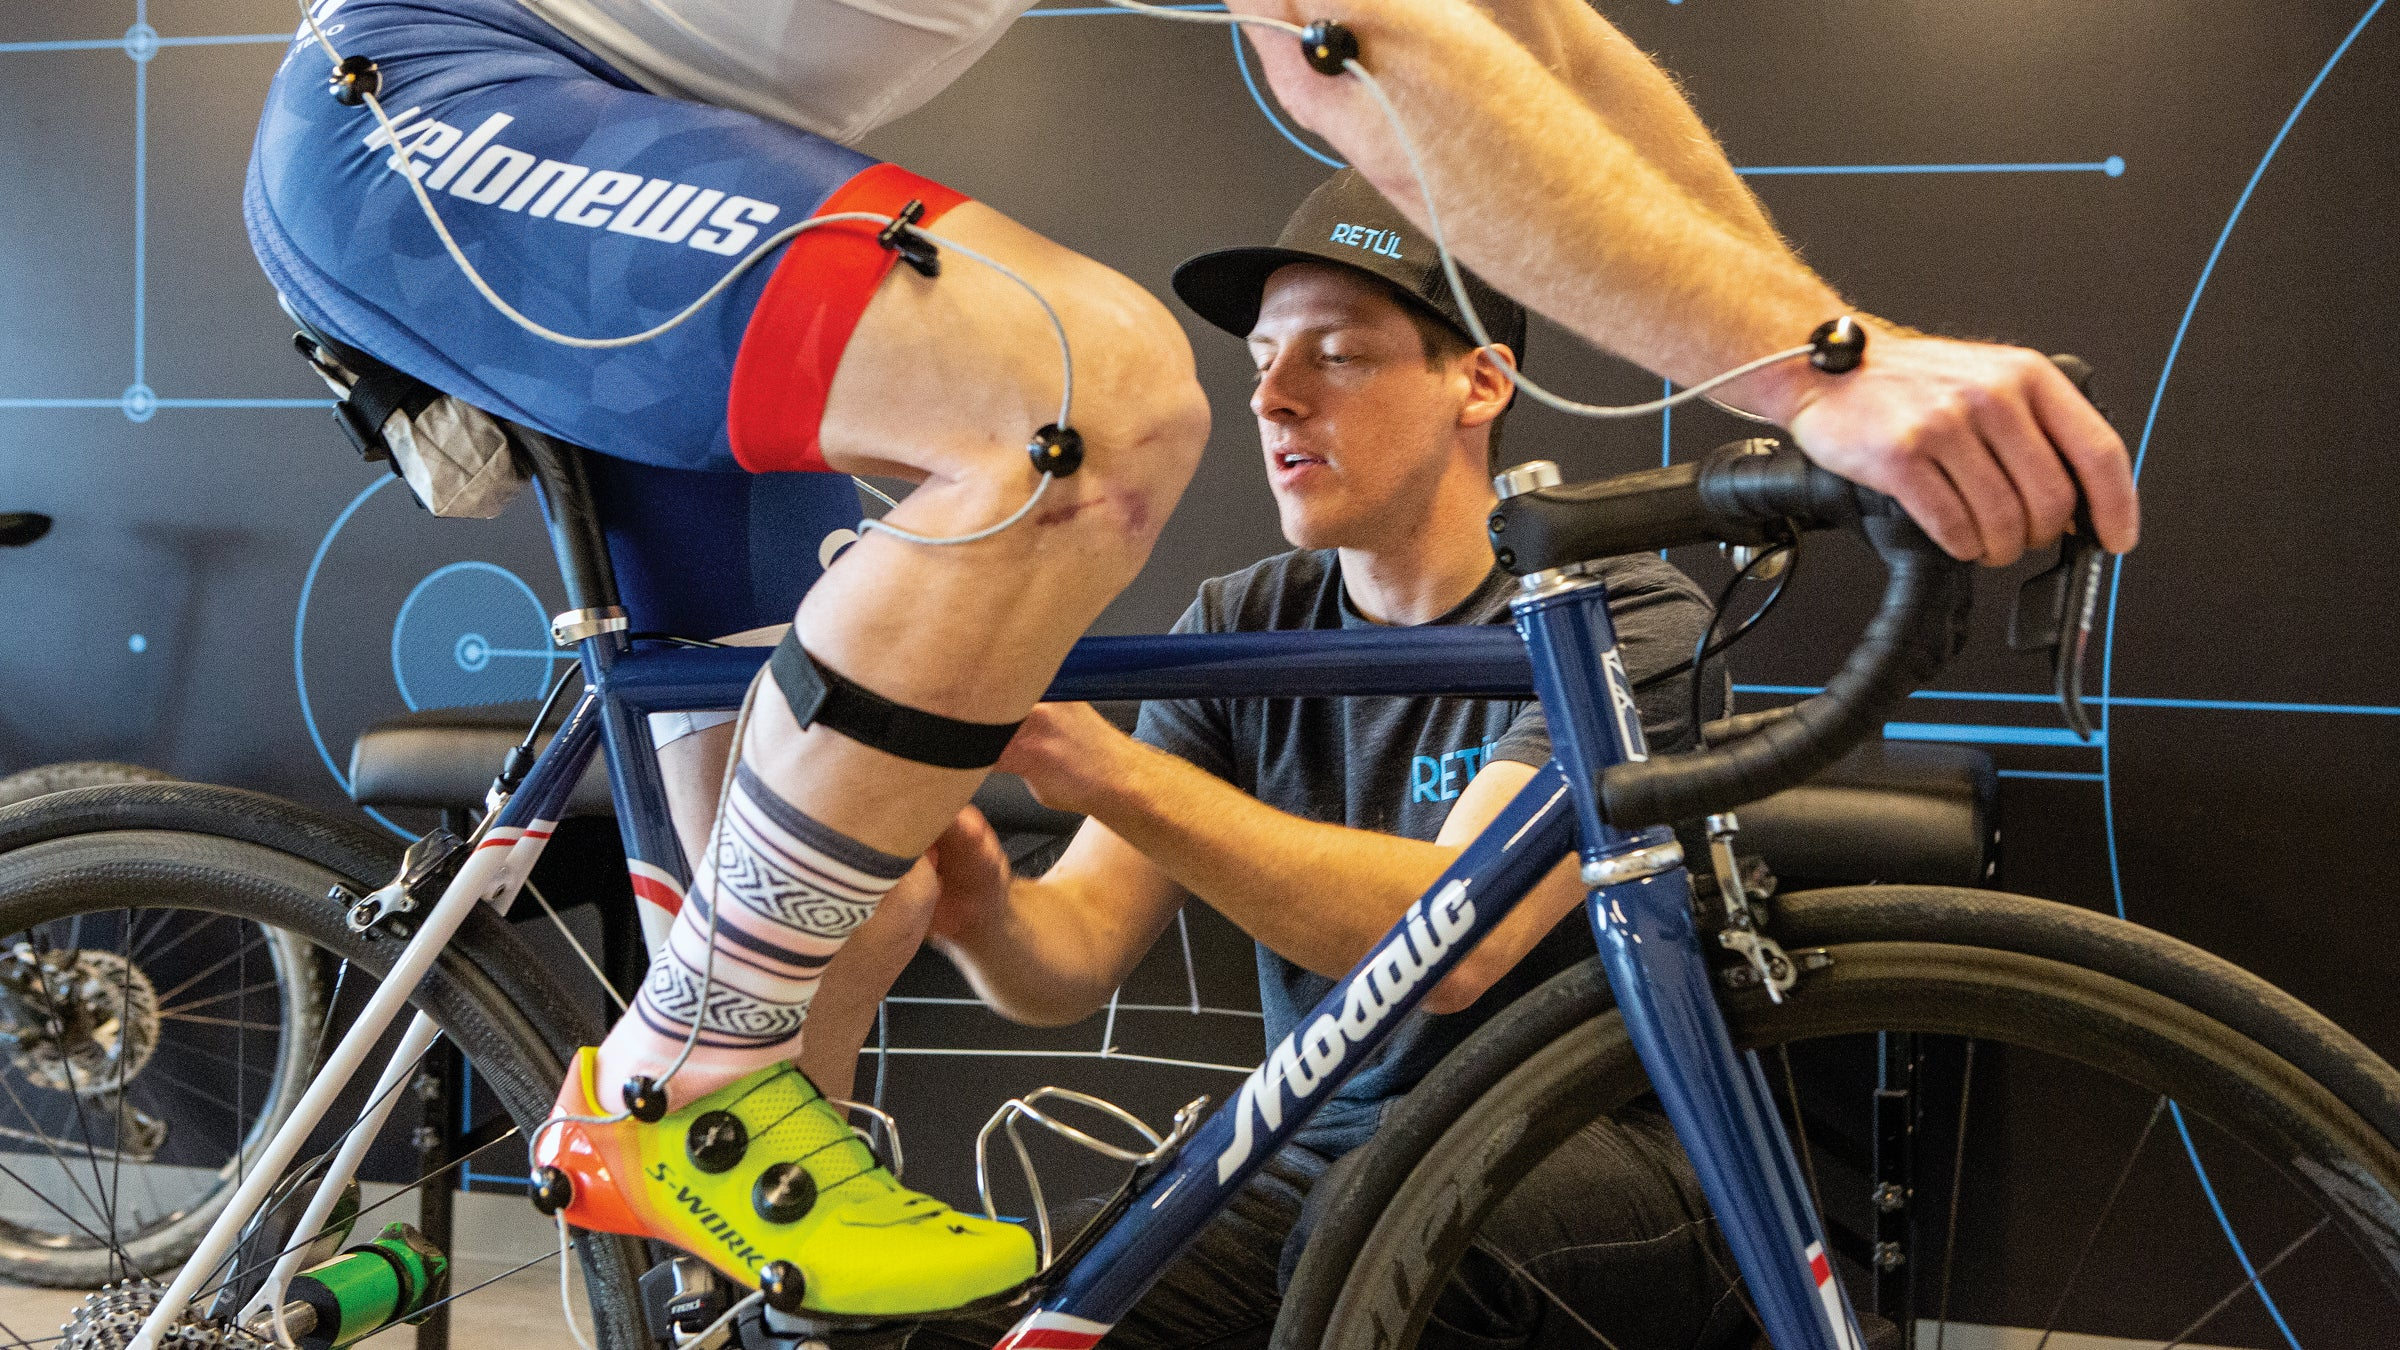 Bike fitting in 2020 is about finding the perfect balance ...